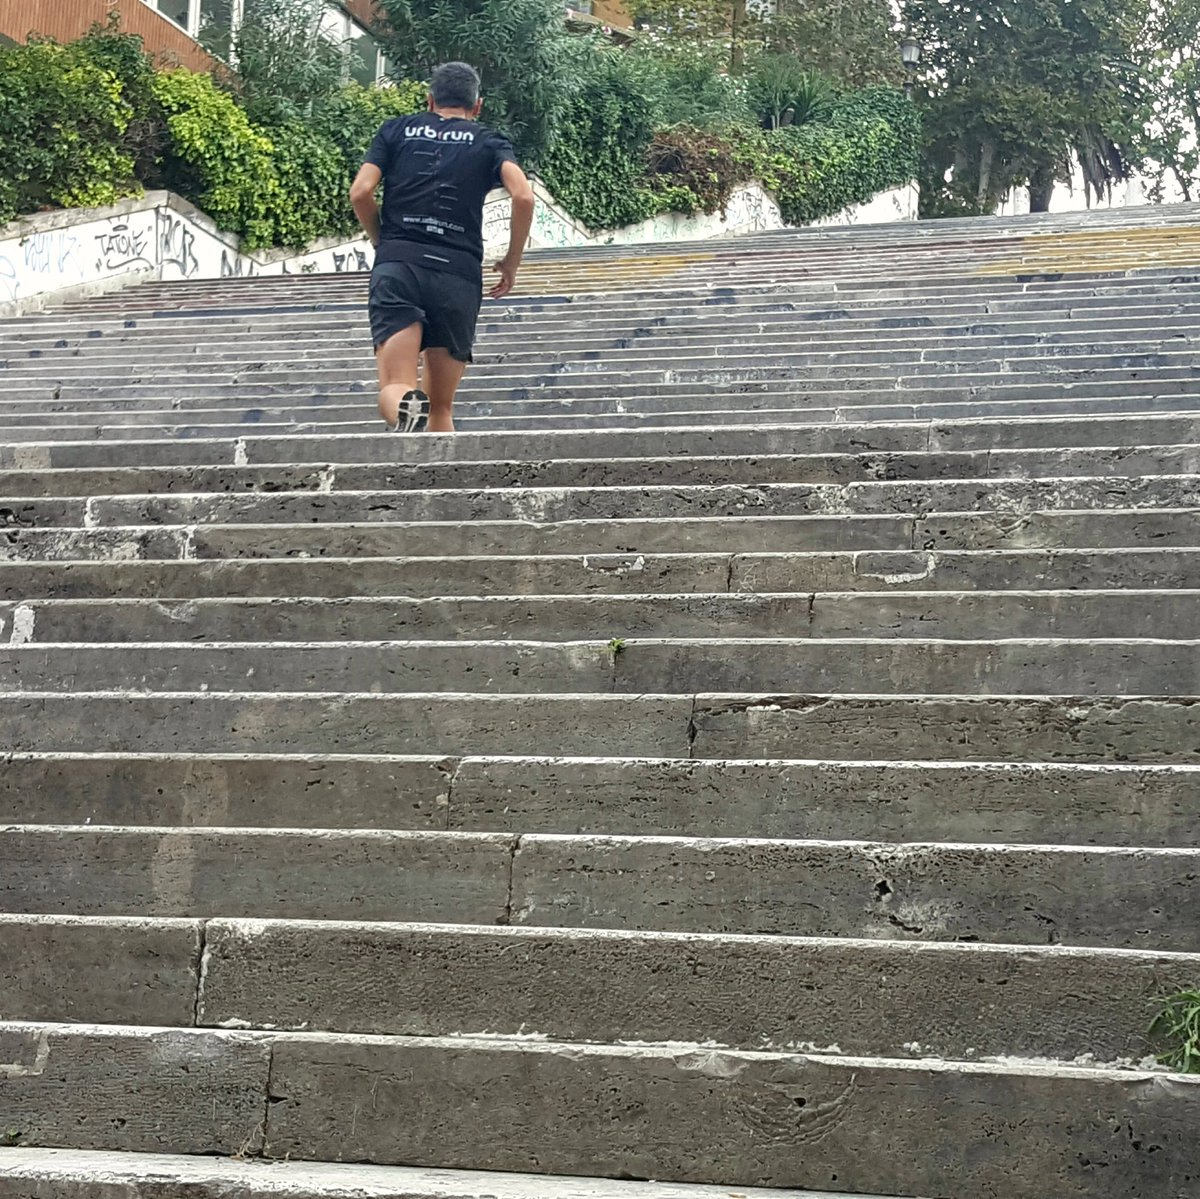 RT si tu n&#39;as pas peur des escaliers / RT if you don&#39;t fear stairs #running #courir #courseapied #laufen #run #nofear #neverstoprunning<br>http://pic.twitter.com/CTH9Ai5ihf